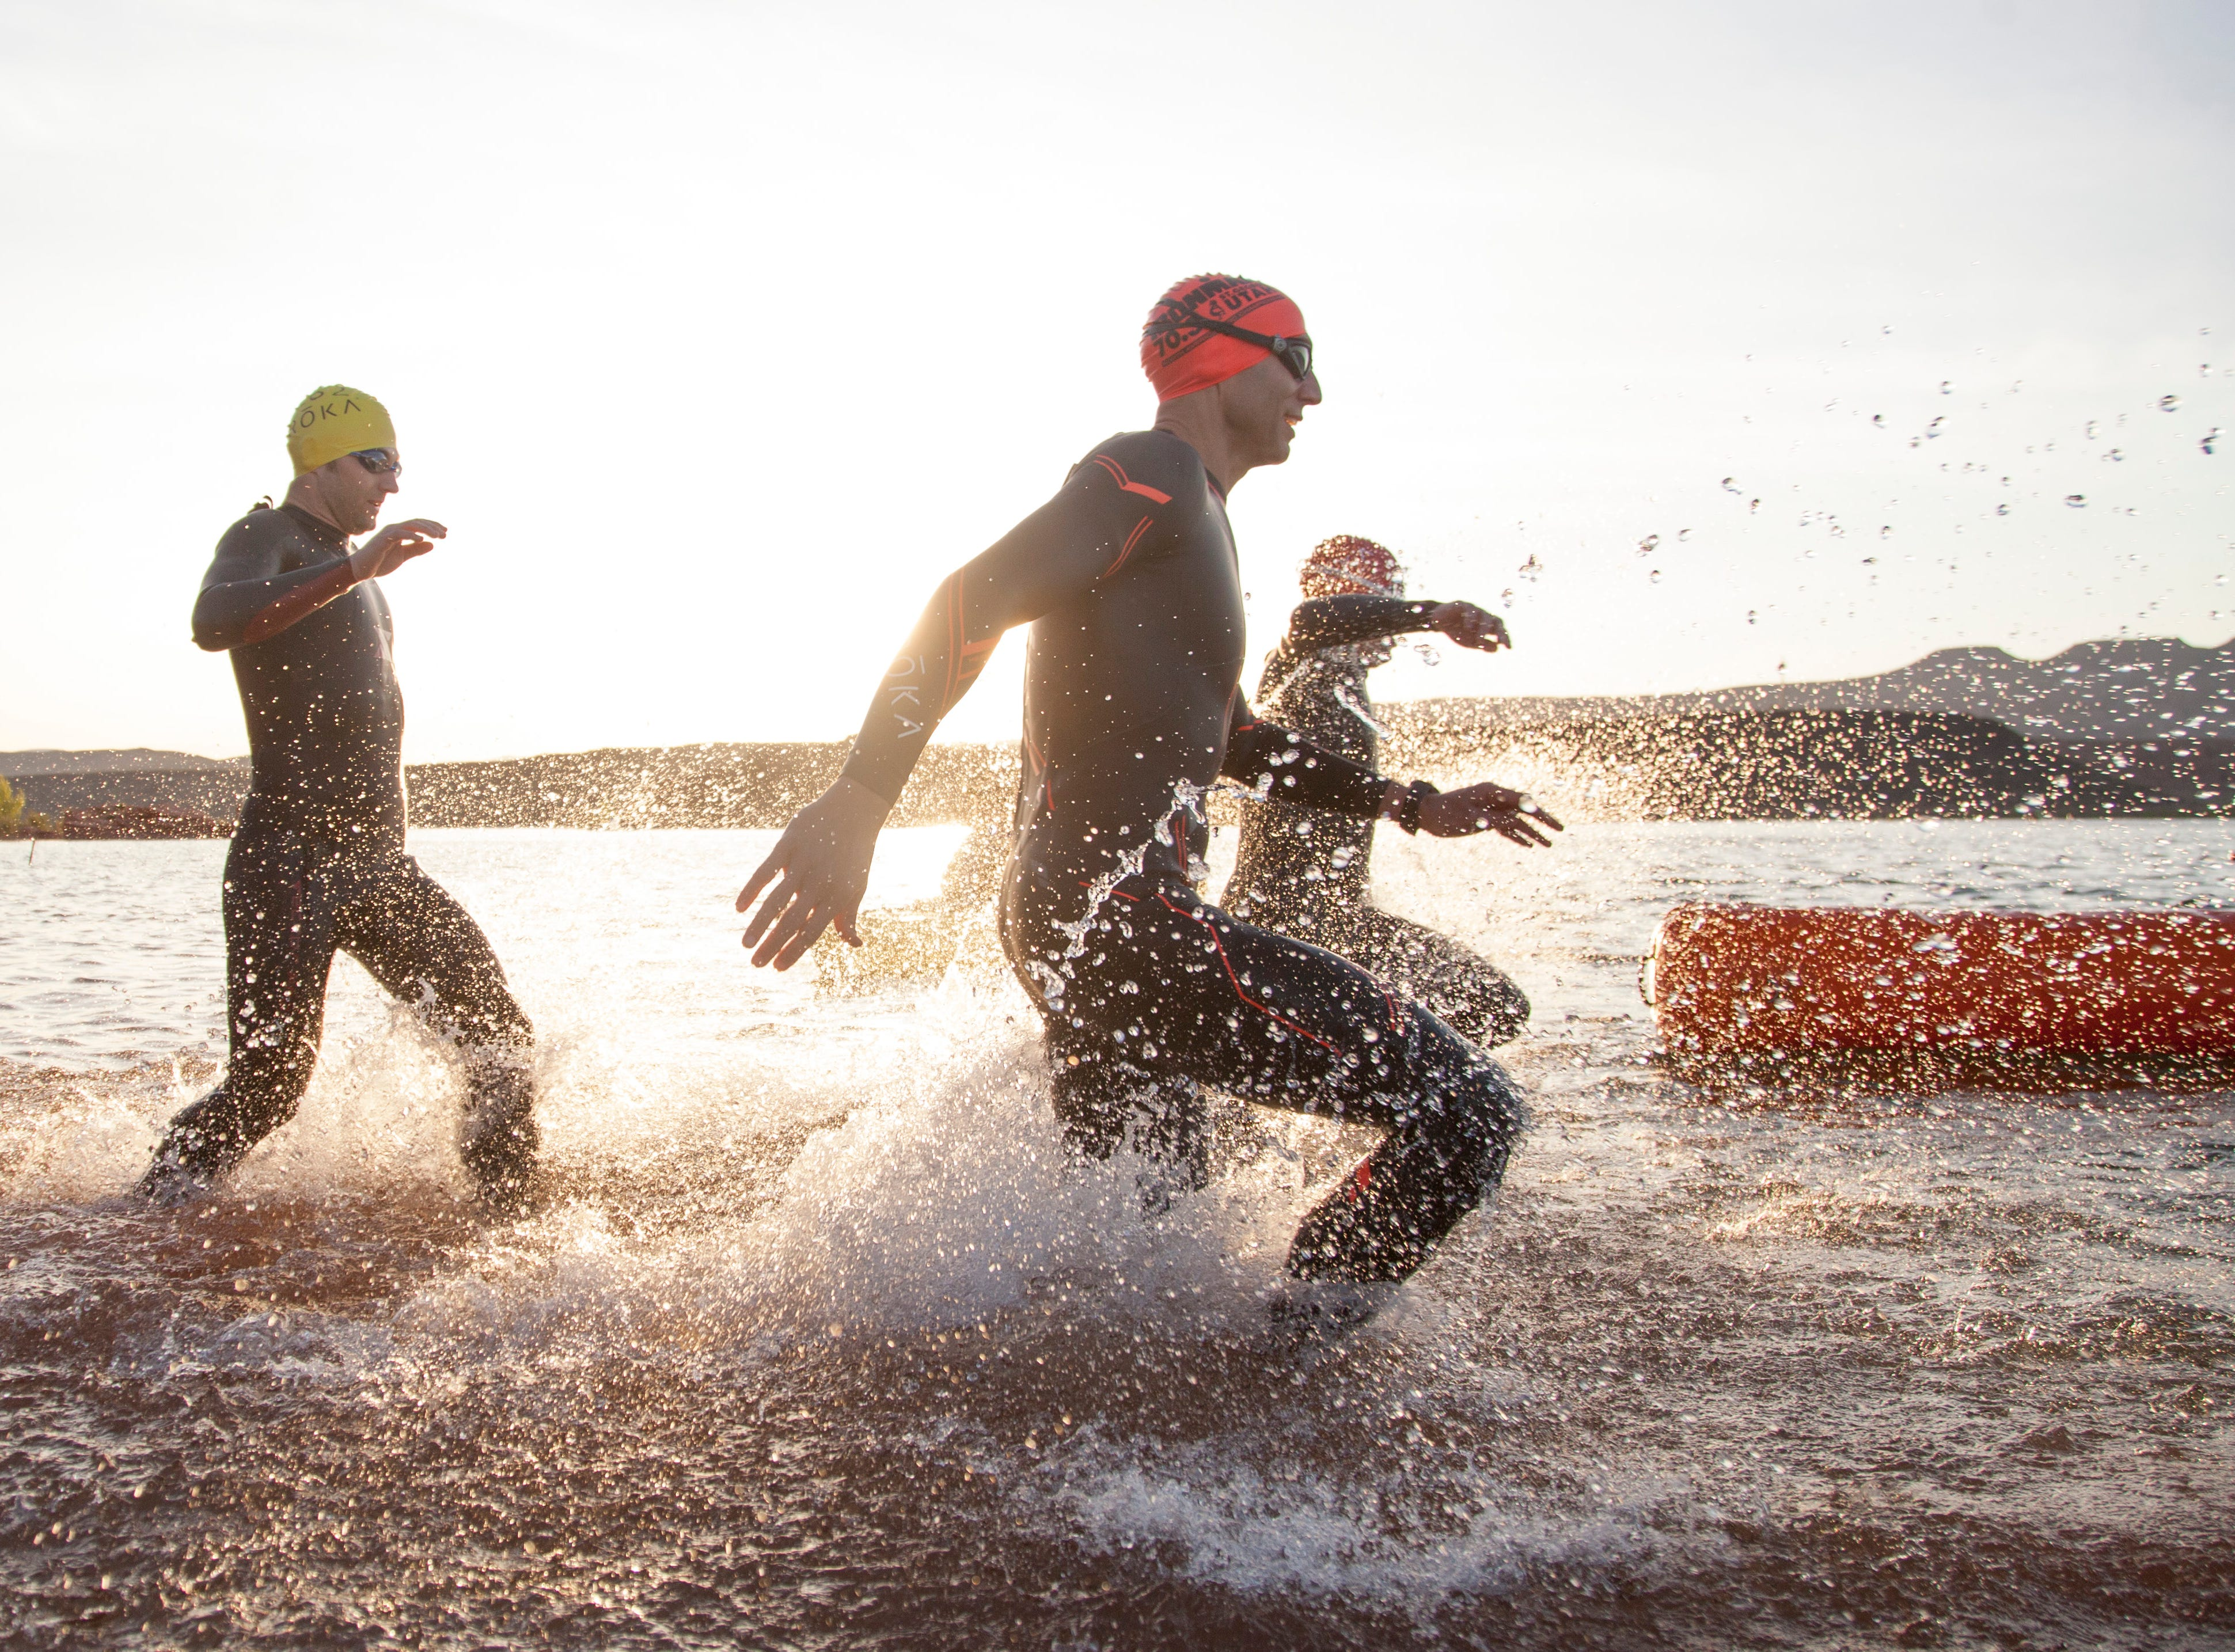 Athletes from around the world compete in the St. George Ironman Saturday, May 5, 2018